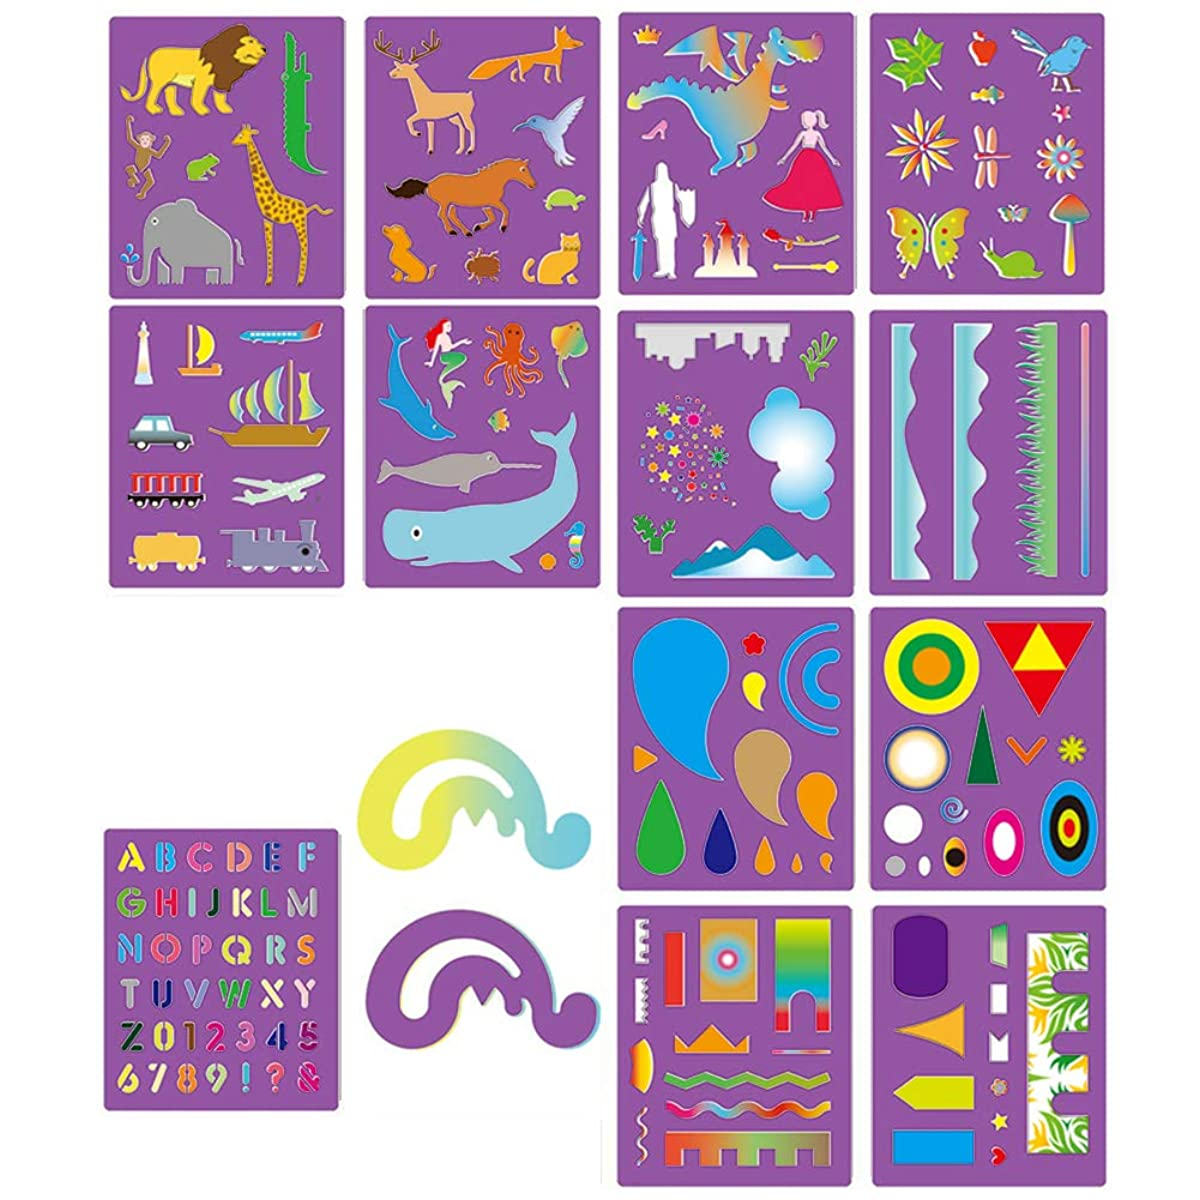 ZTWEDEN 14 Pcs Ultimate Stencil Set Bullet Journal Stencils Over 160 Different Patterns for Kids Ideal for Educational and Creativity Toy Painting Washable Template for Home or School